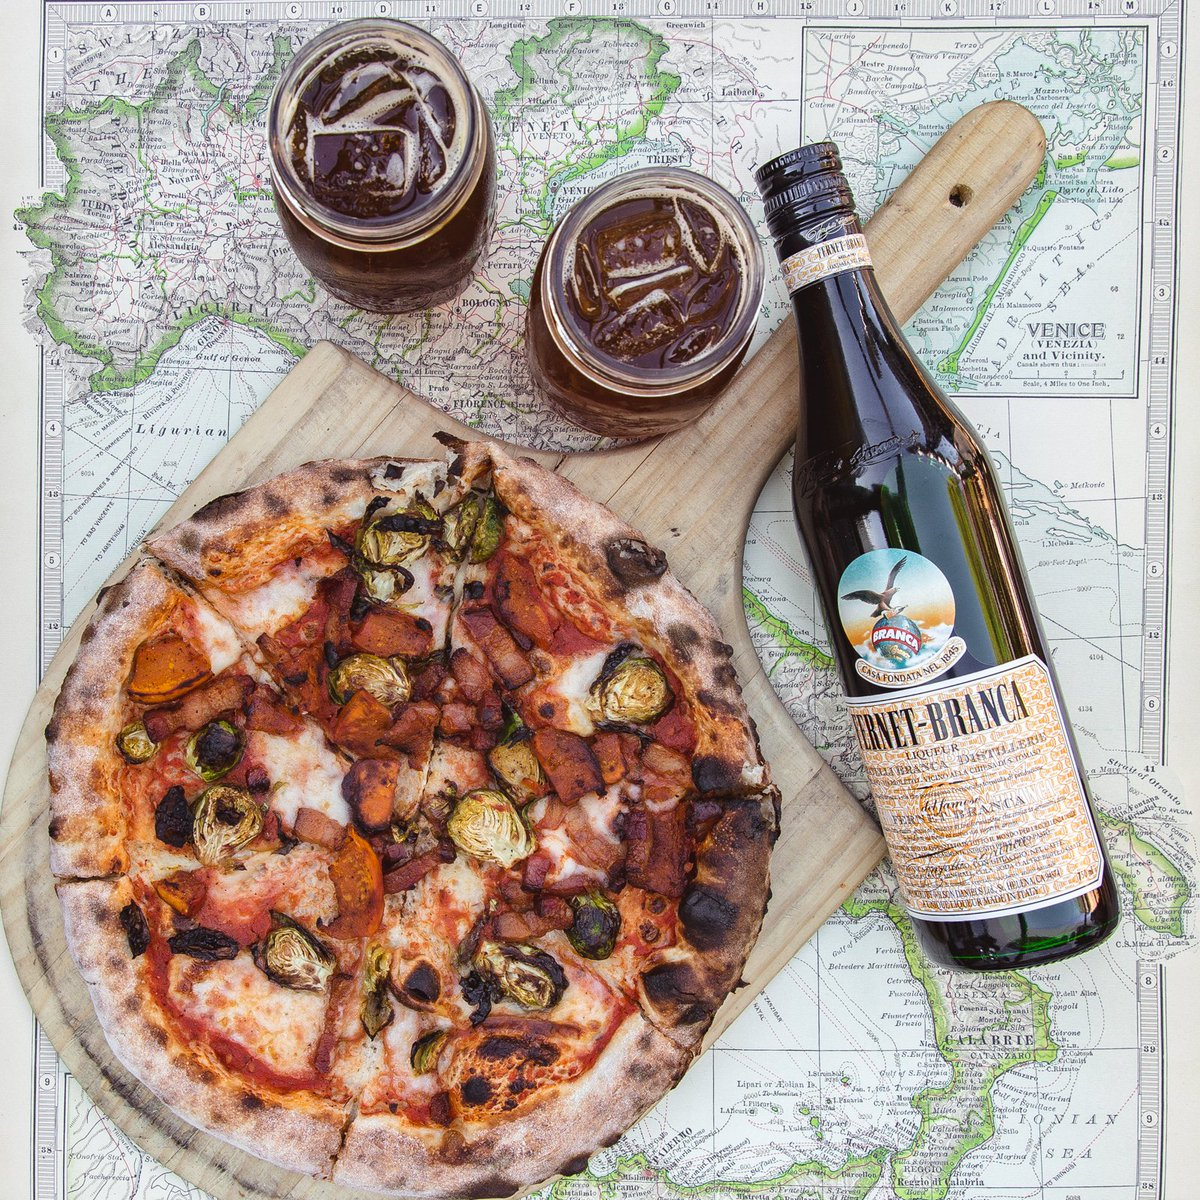 You can't buy happiness, but you can buy @FernetBranca and pizza. https://t.co/v2wTyG8jHU